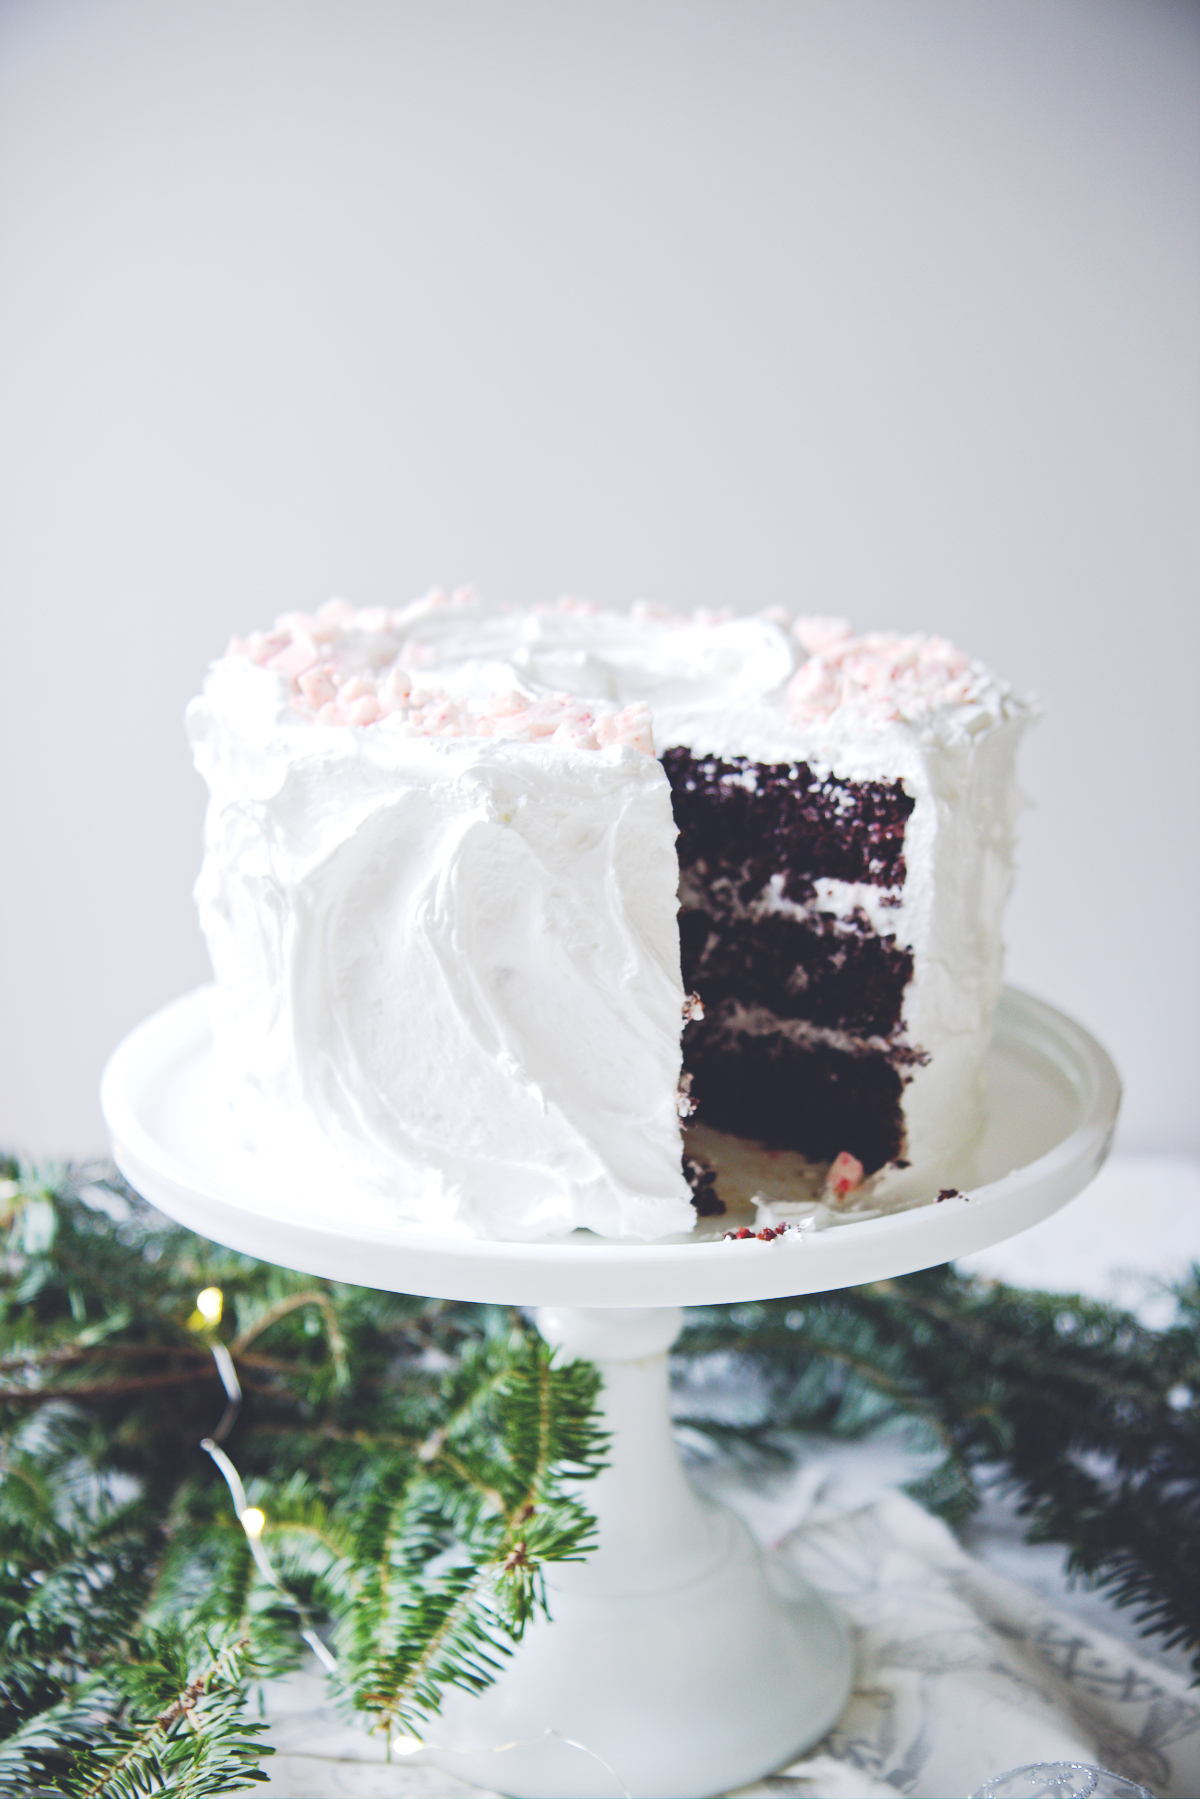 Chocolate Peppermint Cloud Cake | La Pêche Fraîche